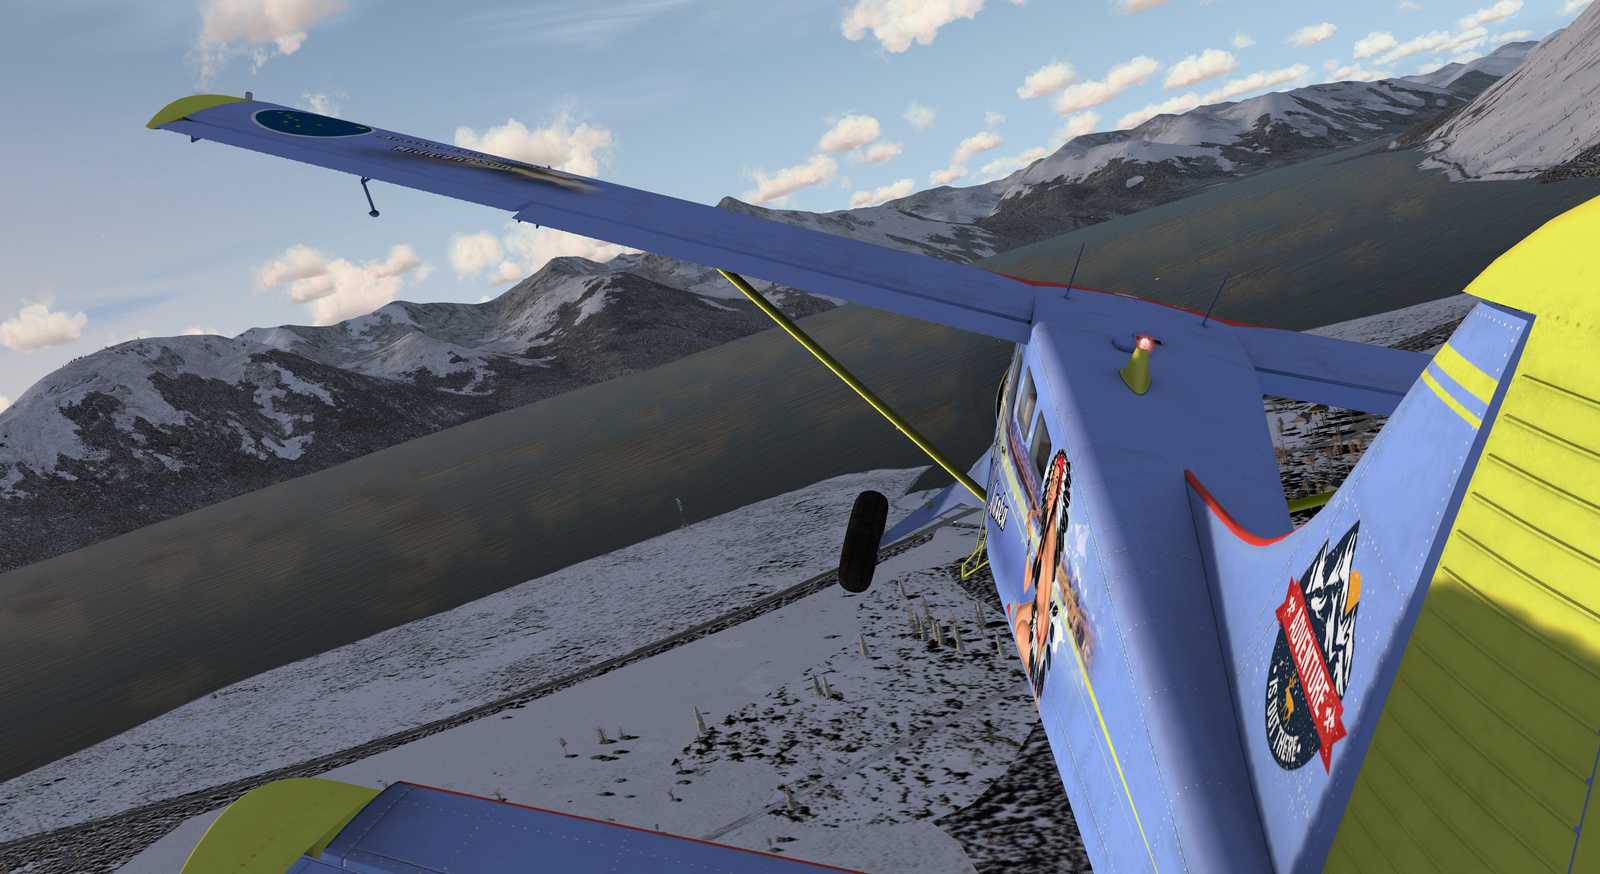 DHC-2 Beaver, Spirit of Alaska, Tundra version, Screenshot 6/19